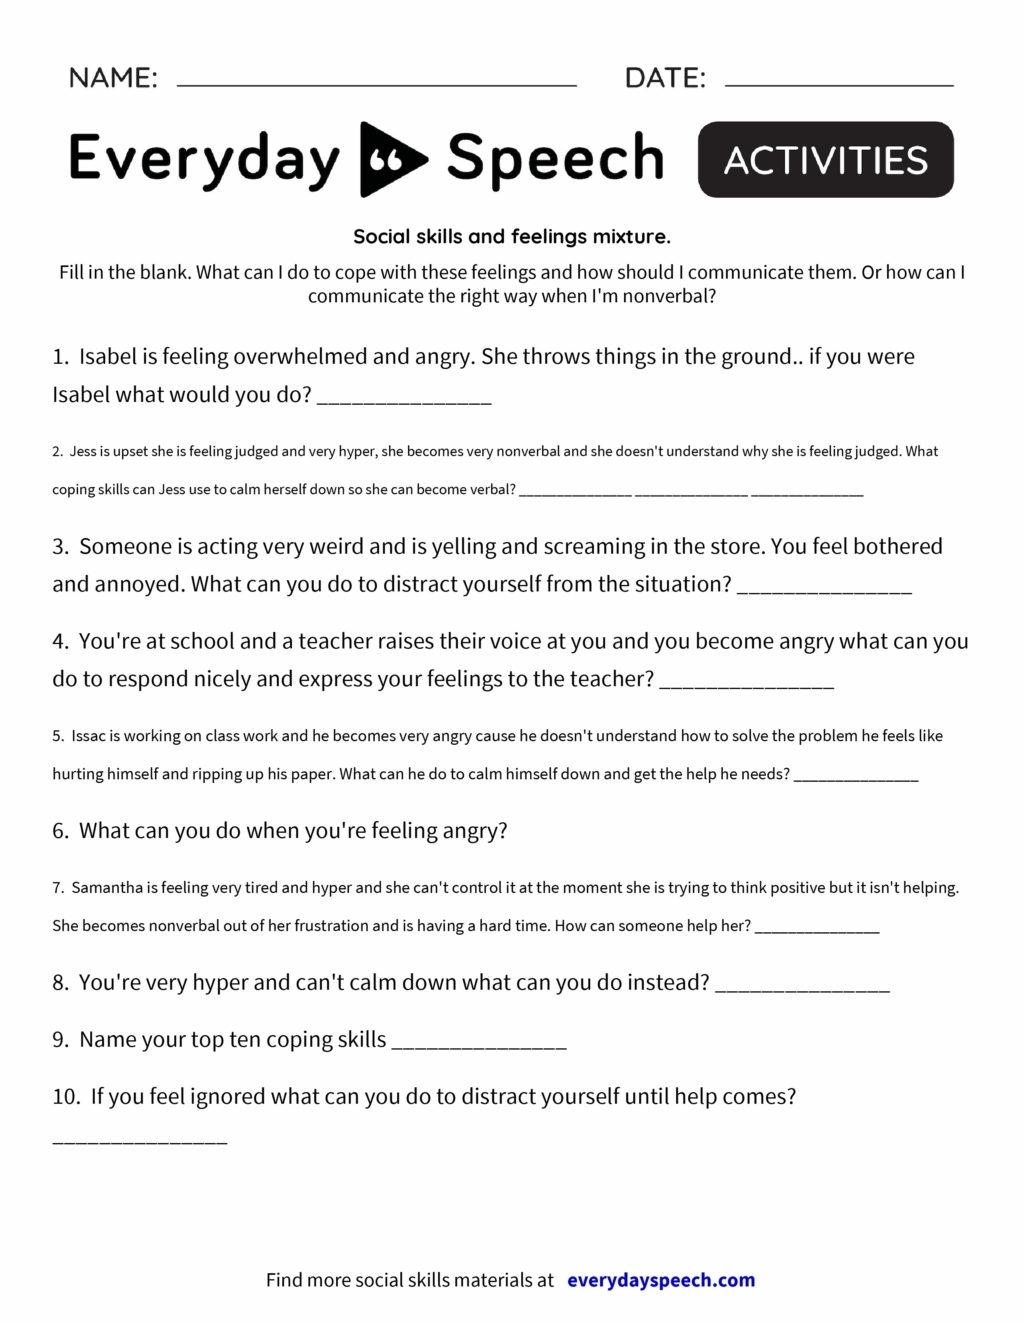 Catch Social Skills Fill In The Blanks Printable Worksheets